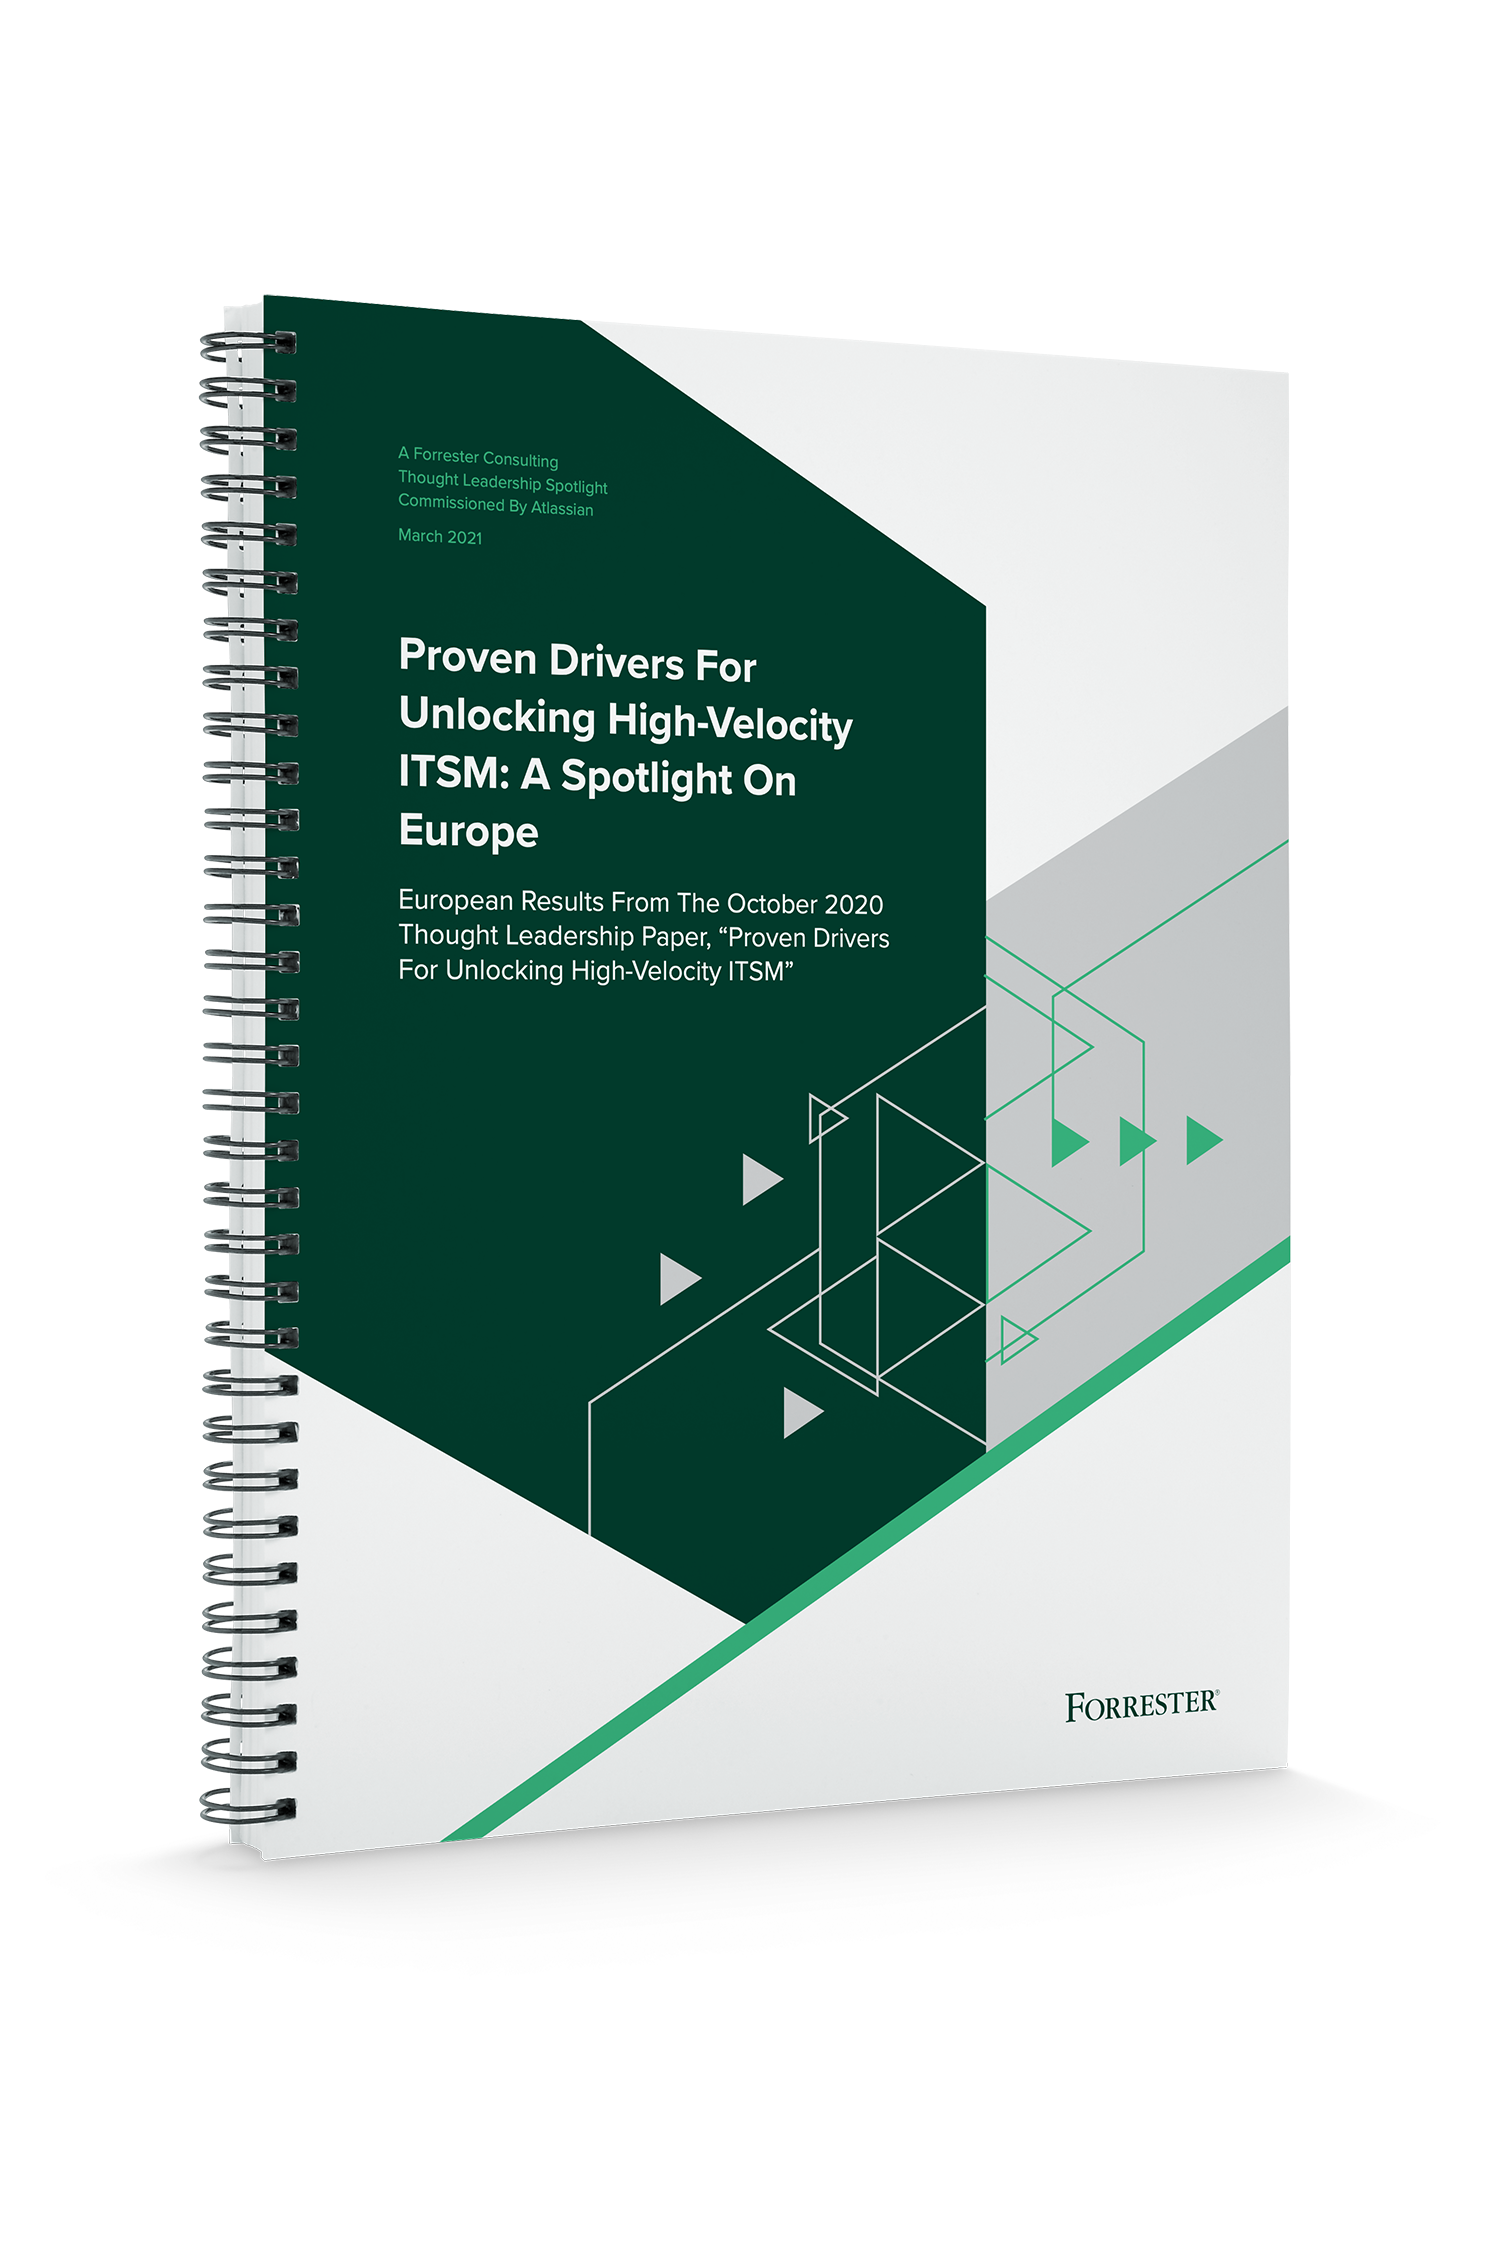 """Forrester's """"Proven Drivers for Unlocking High-Velocity ITSM"""""""